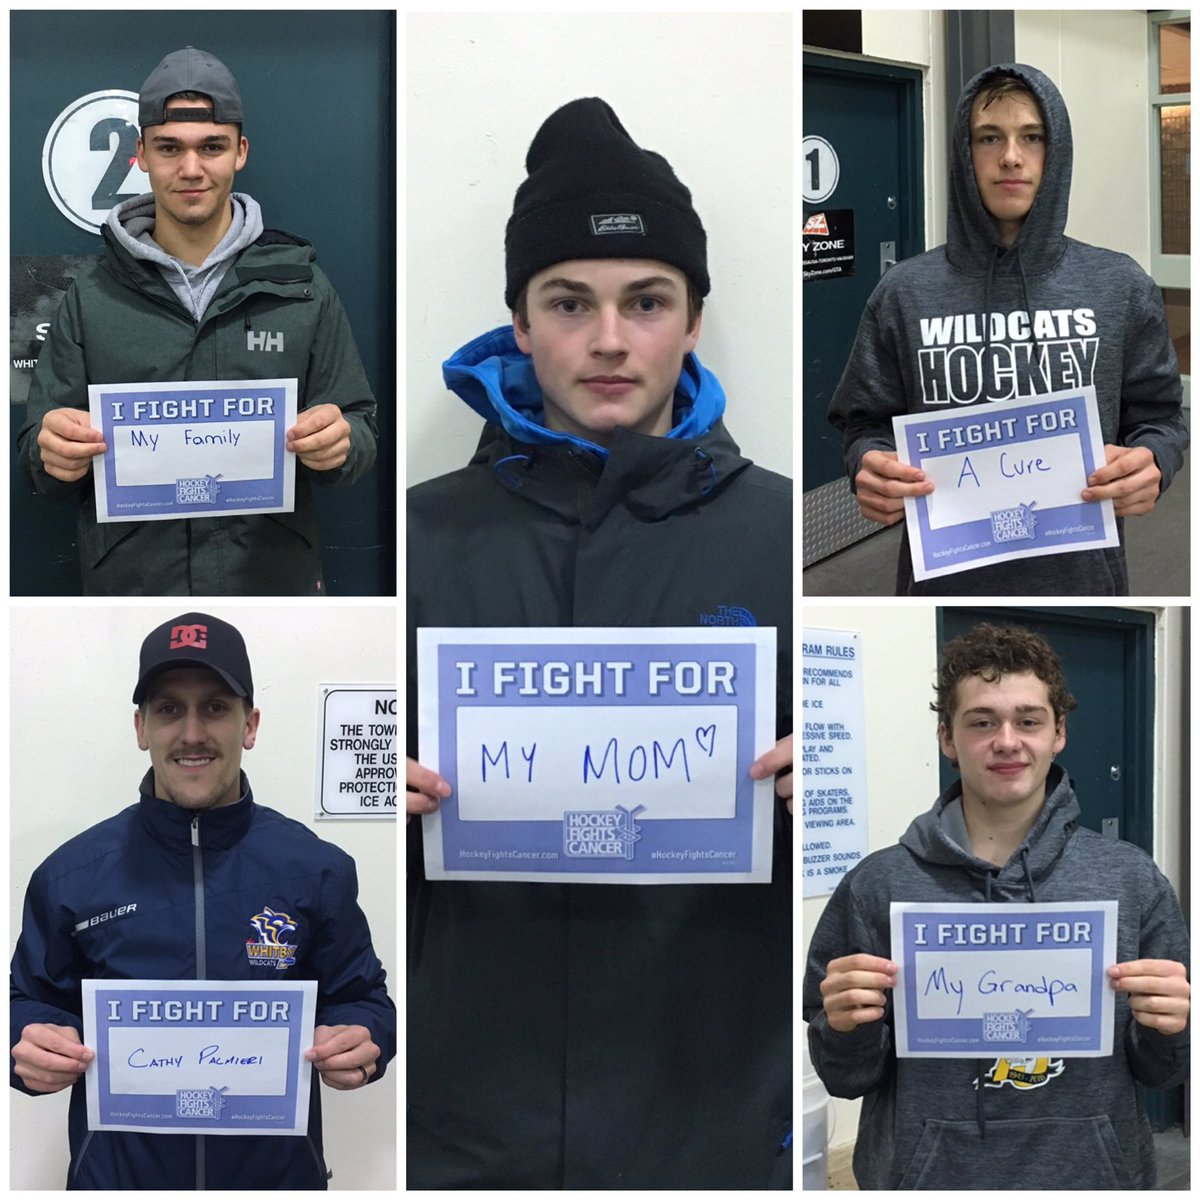 #HockeyFightsCancer tonight as @WhitbyAAAMidget take on @YSEMidgetAAA at Iroquois in #Whitby at 9 PM  We all fight for someone. Here is who we fight for. Come and support your Wildcats as they play for something bigger than #hockey  Who are you fighting for?   #JoinTheFight <br>http://pic.twitter.com/QeyxBqsb8g